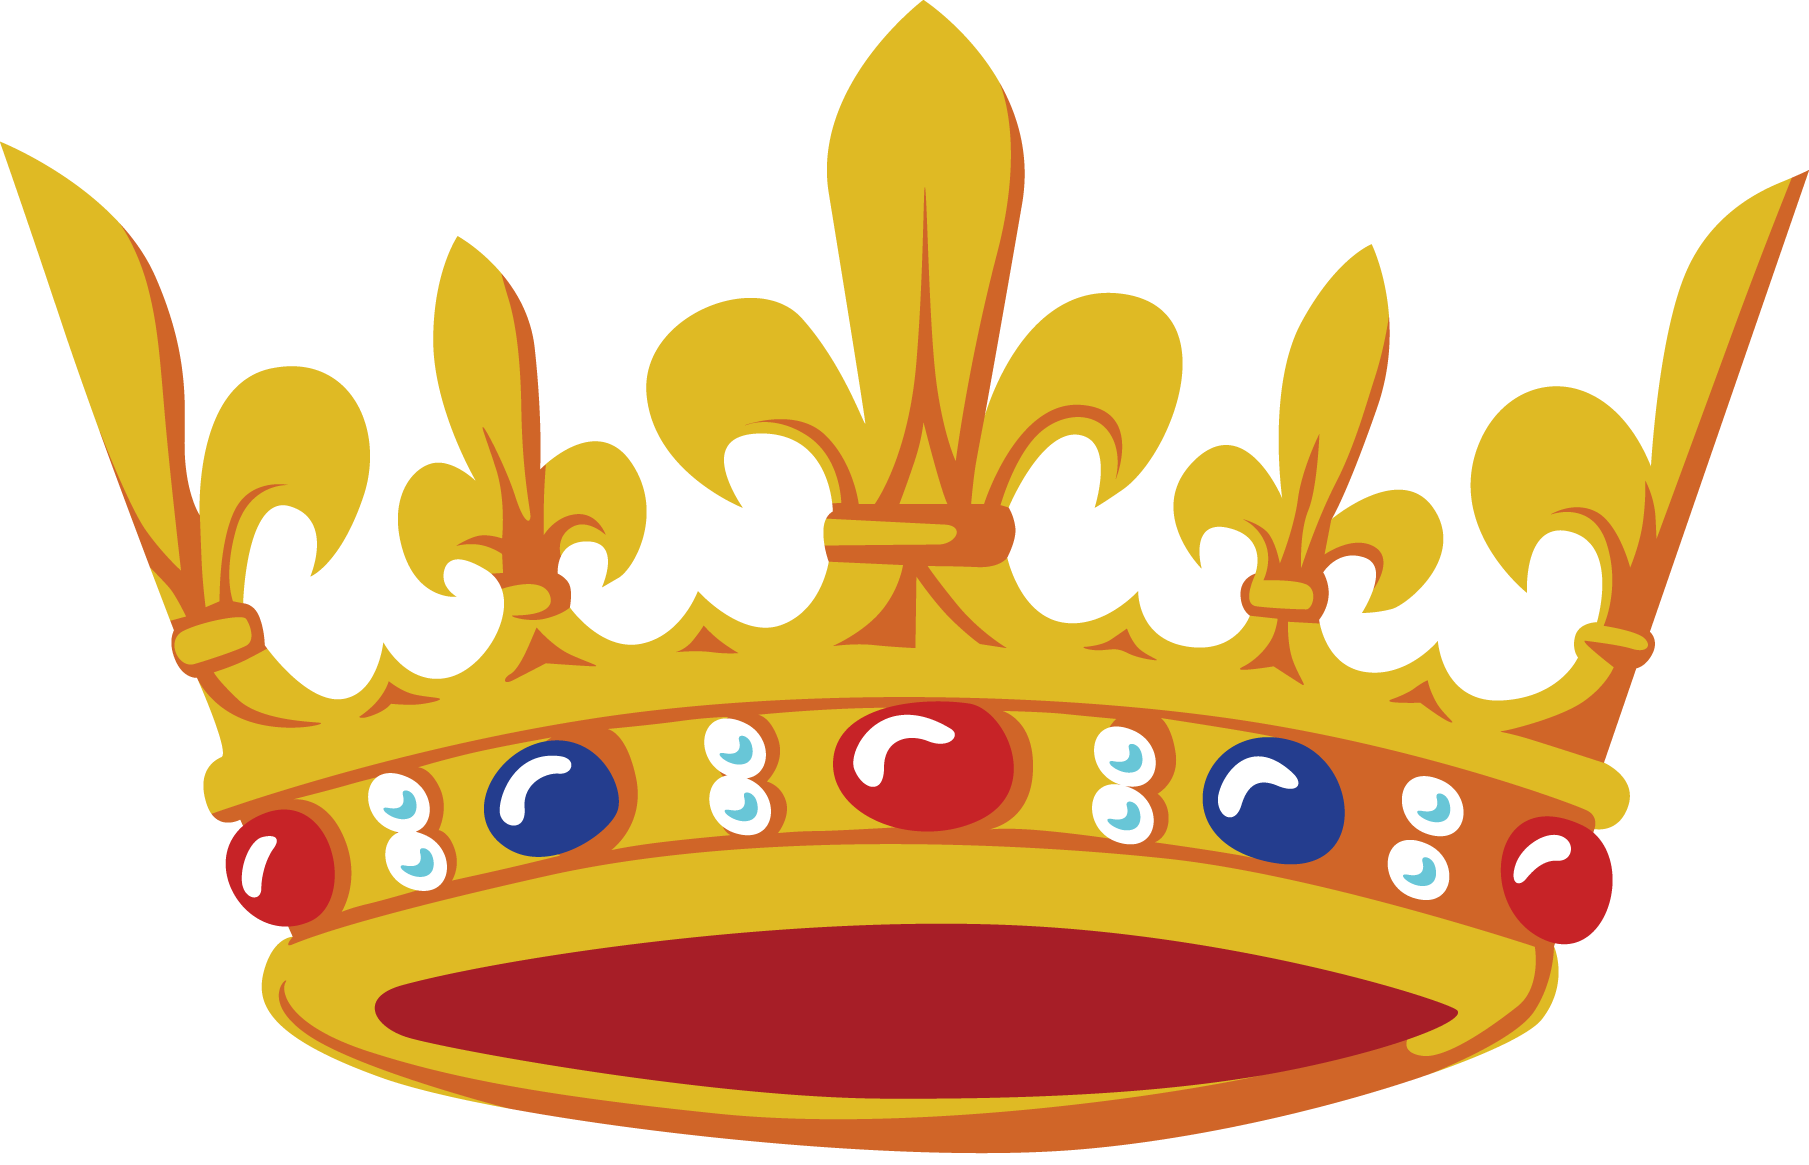 Princess crown clipart no background picture transparent stock Gold Crown Korona PNG Image - PurePNG | Free transparent CC0 PNG ... picture transparent stock